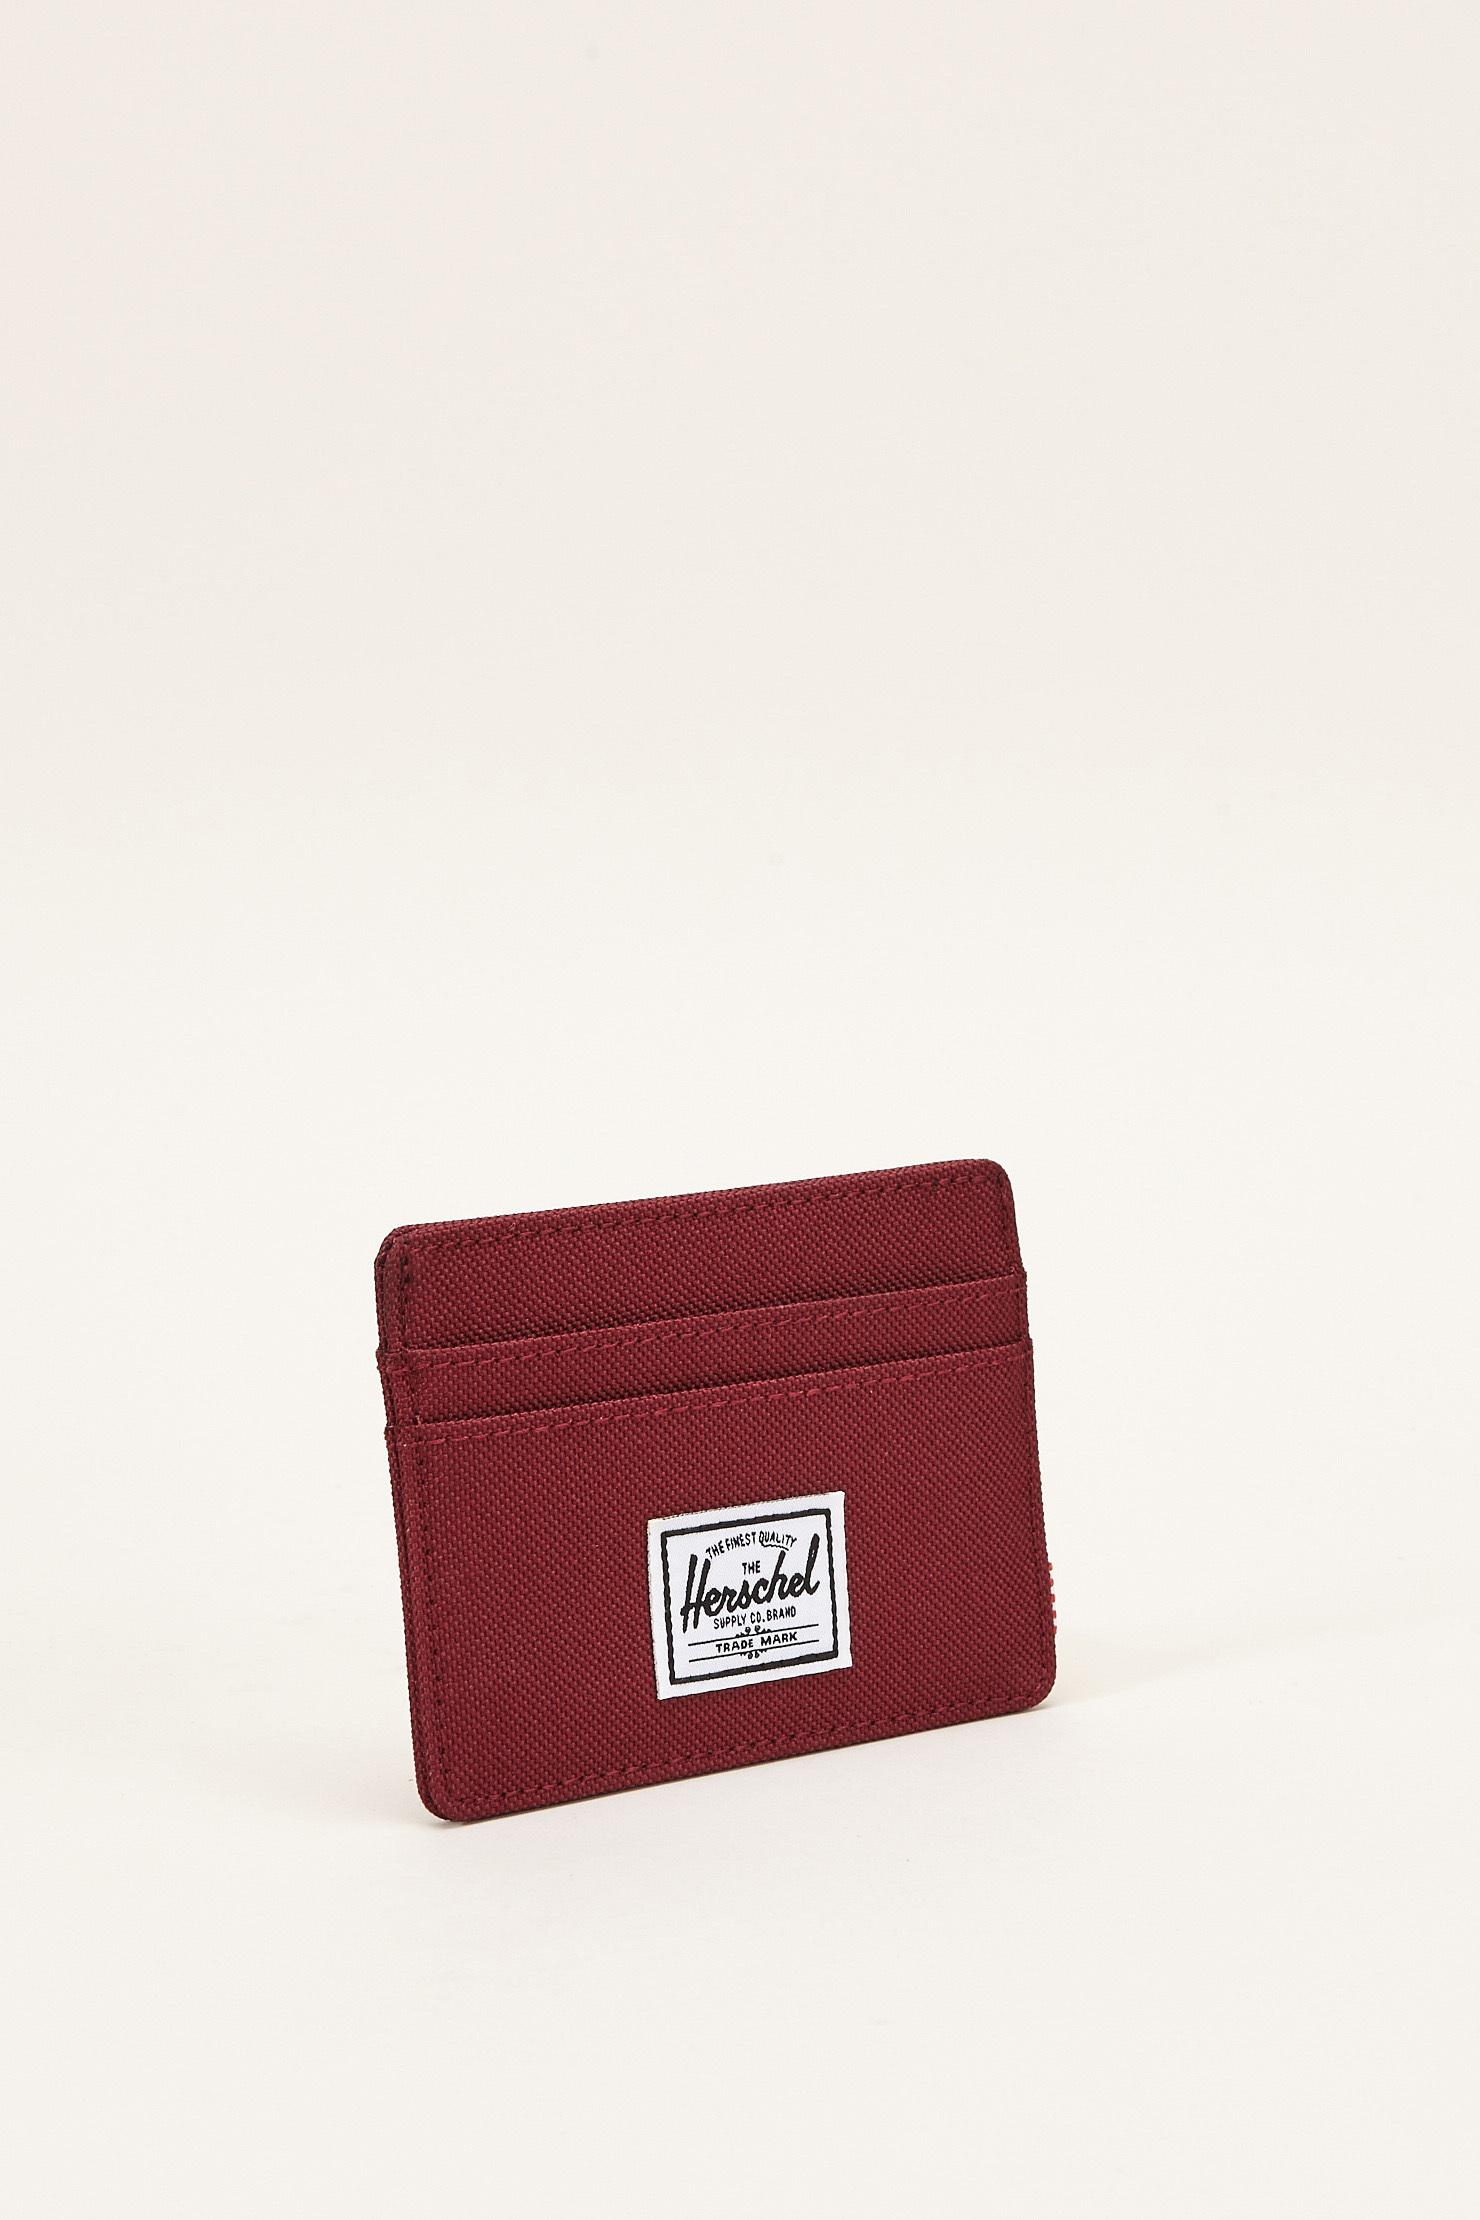 Red business card holder gallery free business cards red business card holder gallery free business cards herschel supply co business card holder in red magicingreecefo Images